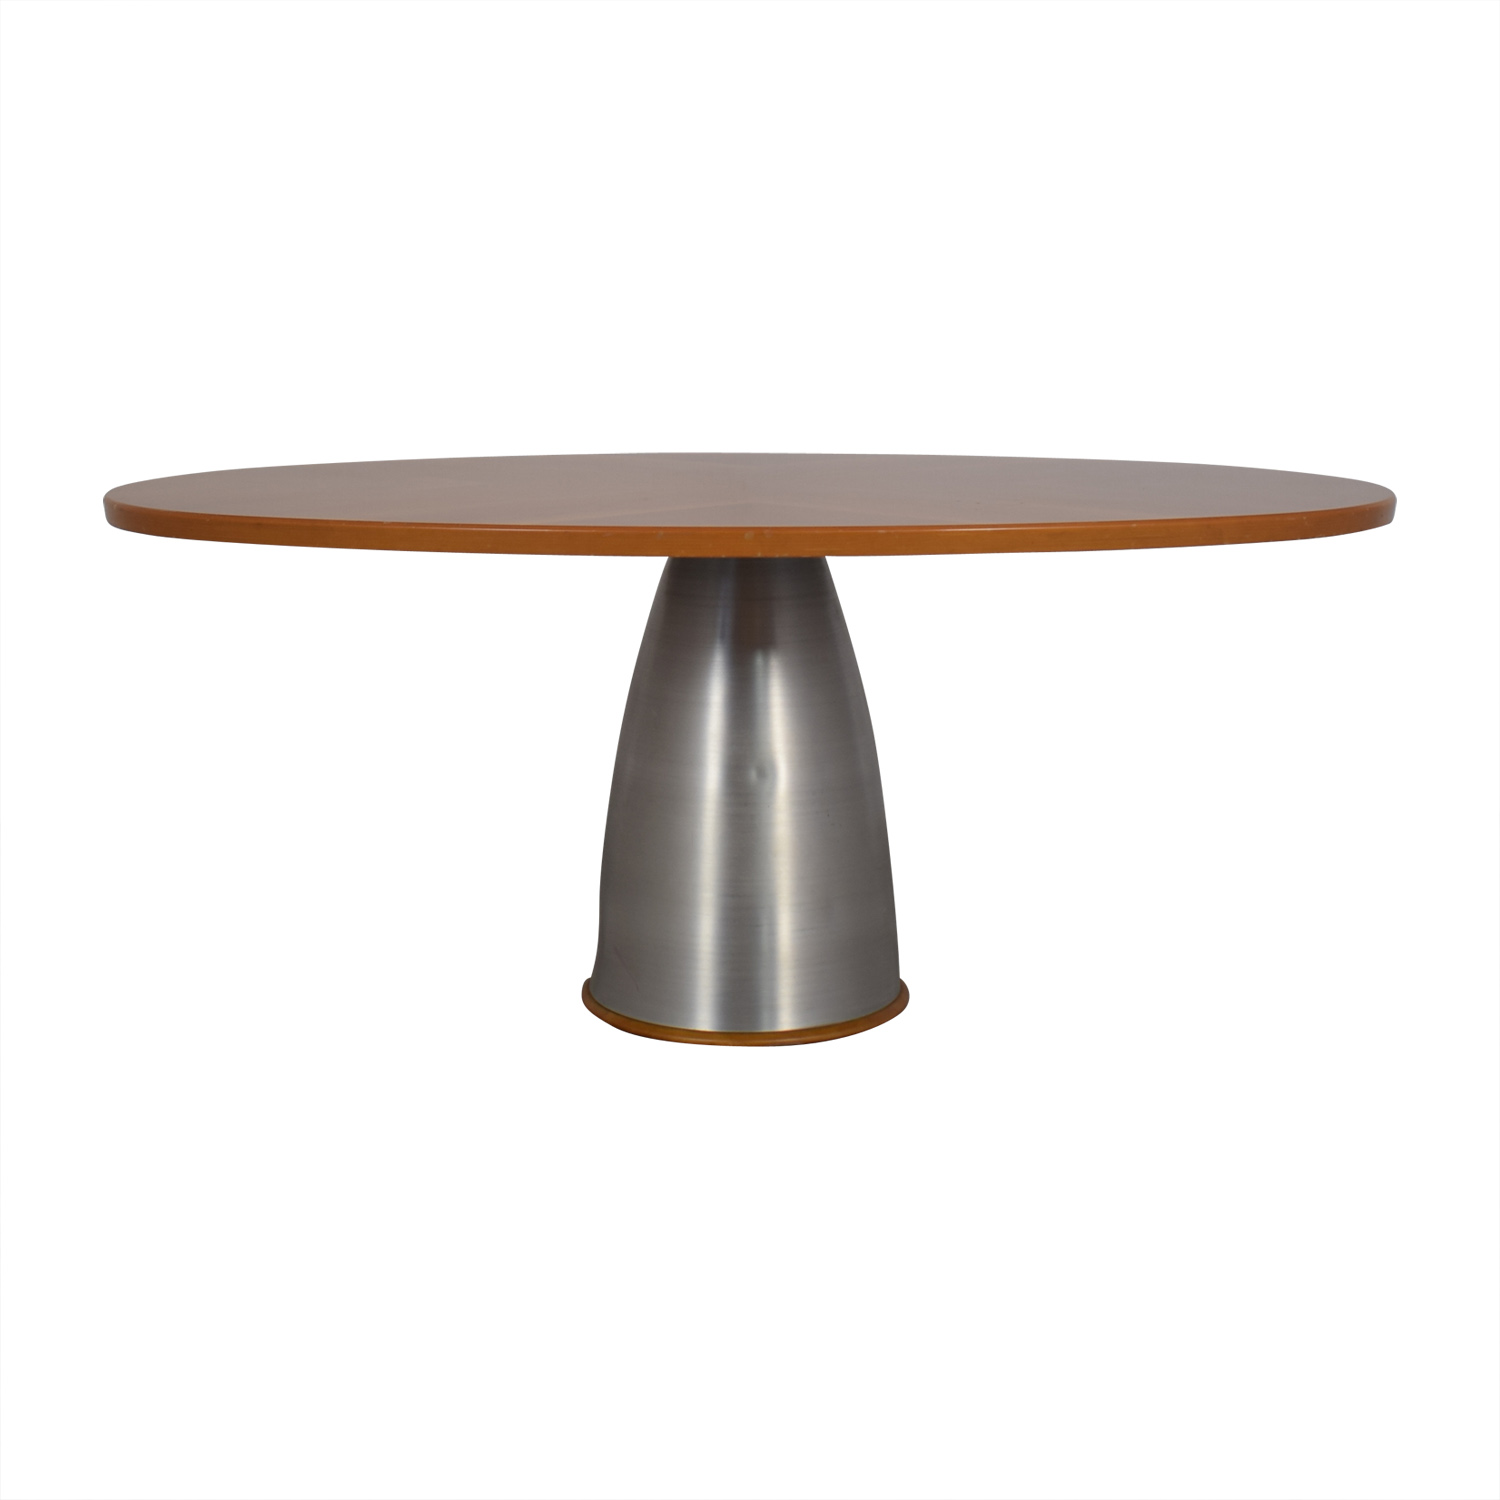 Cattelan Italia Cattelan Italia Dining Table nj